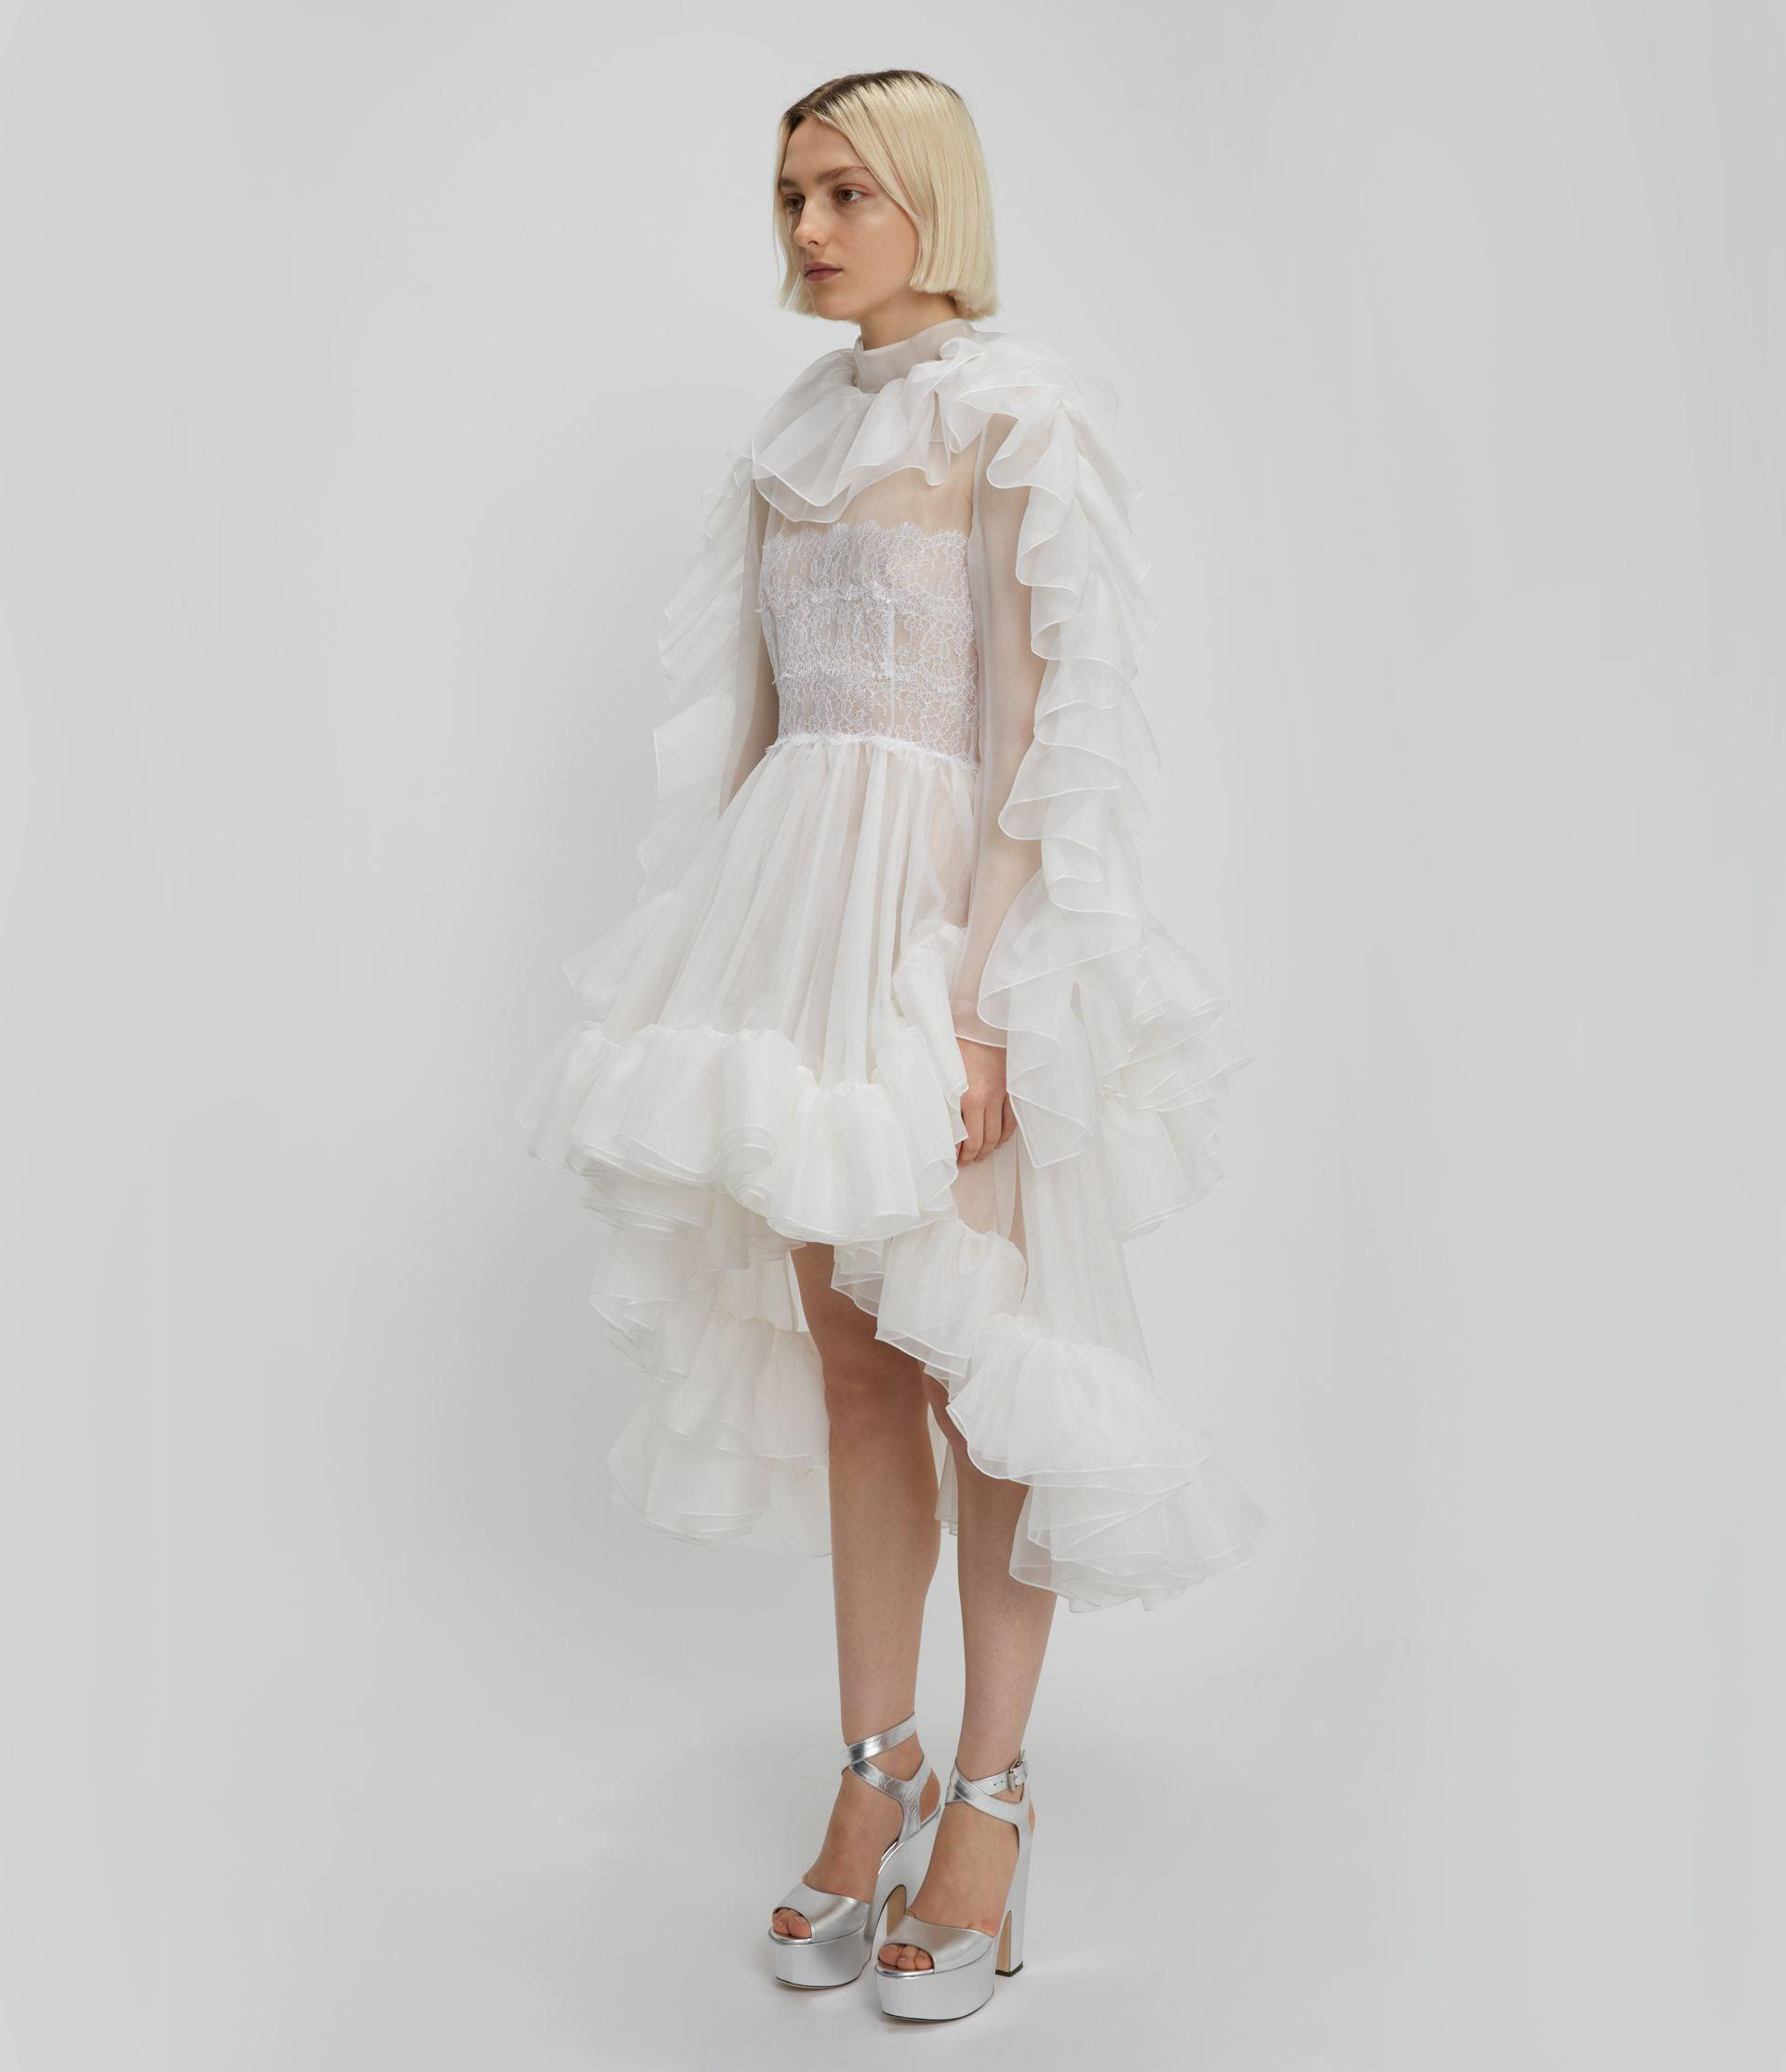 Christopher Kane Bridal: The Organza Frill Gown 1